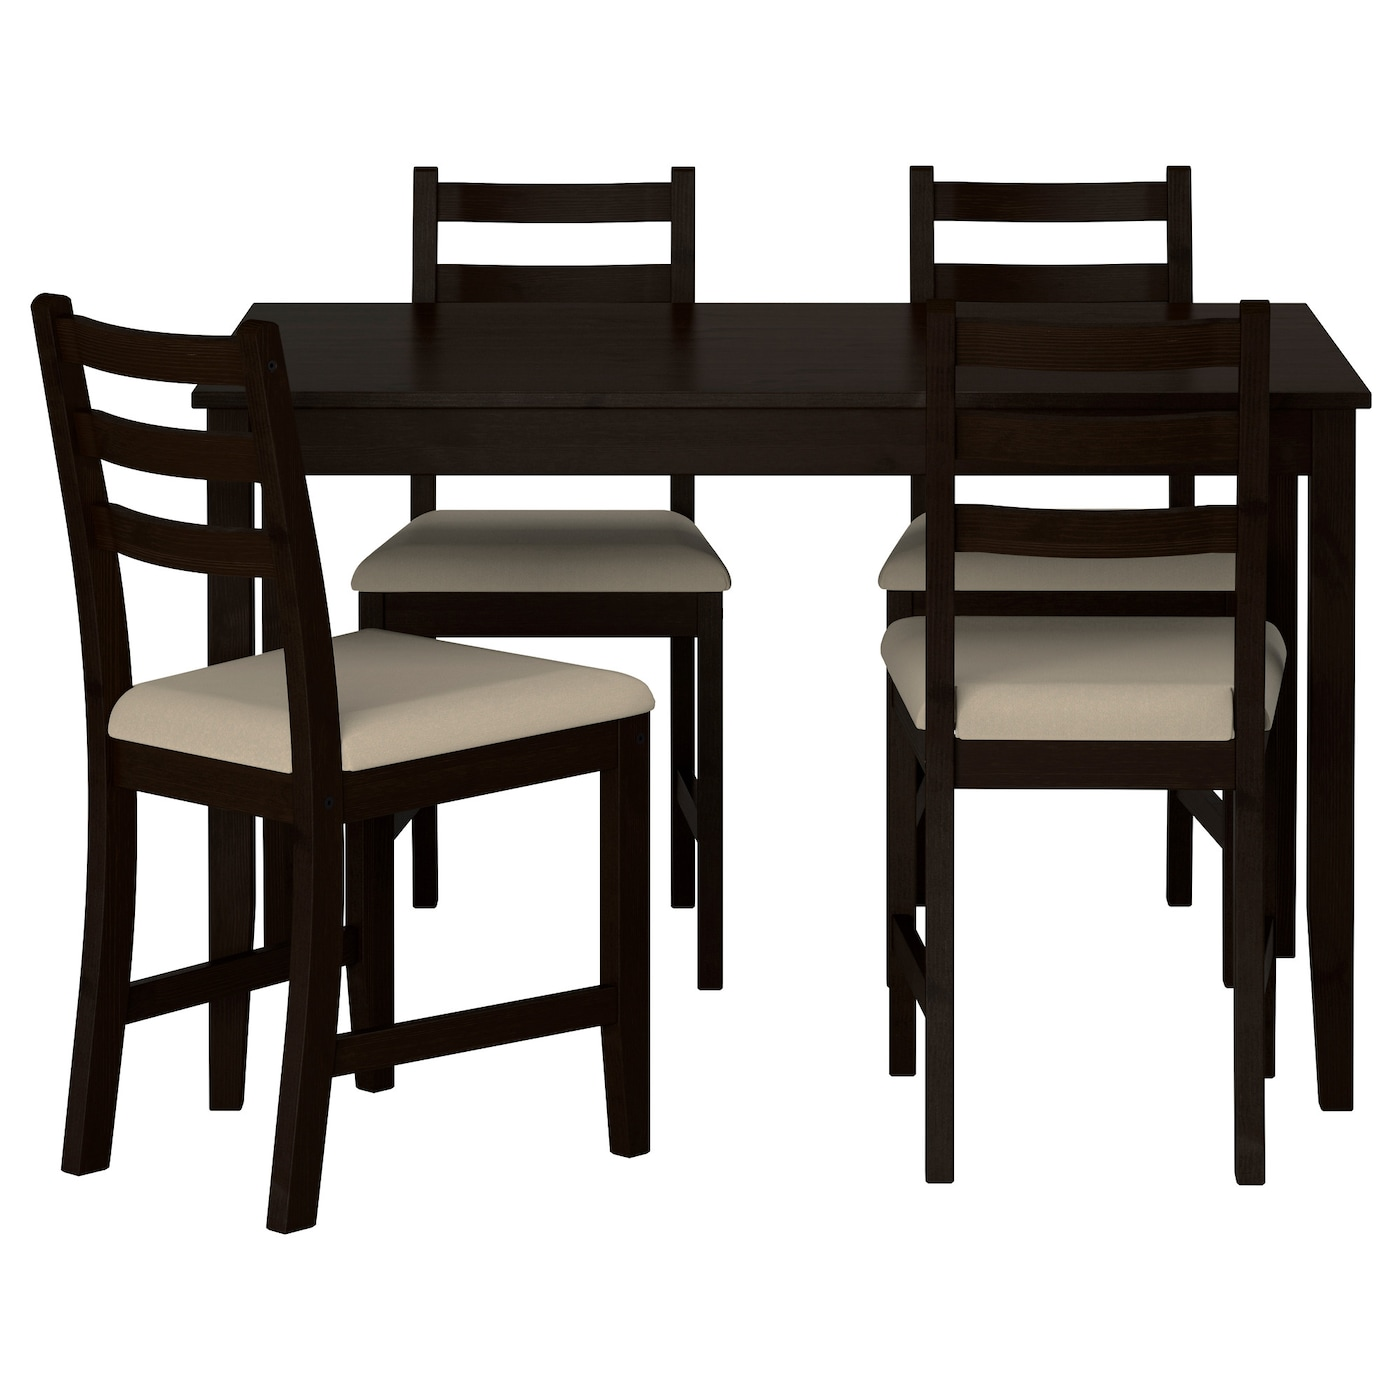 Lerhamn table and 4 chairs black brown ramna beige 118x74 for Small table and 4 chair set